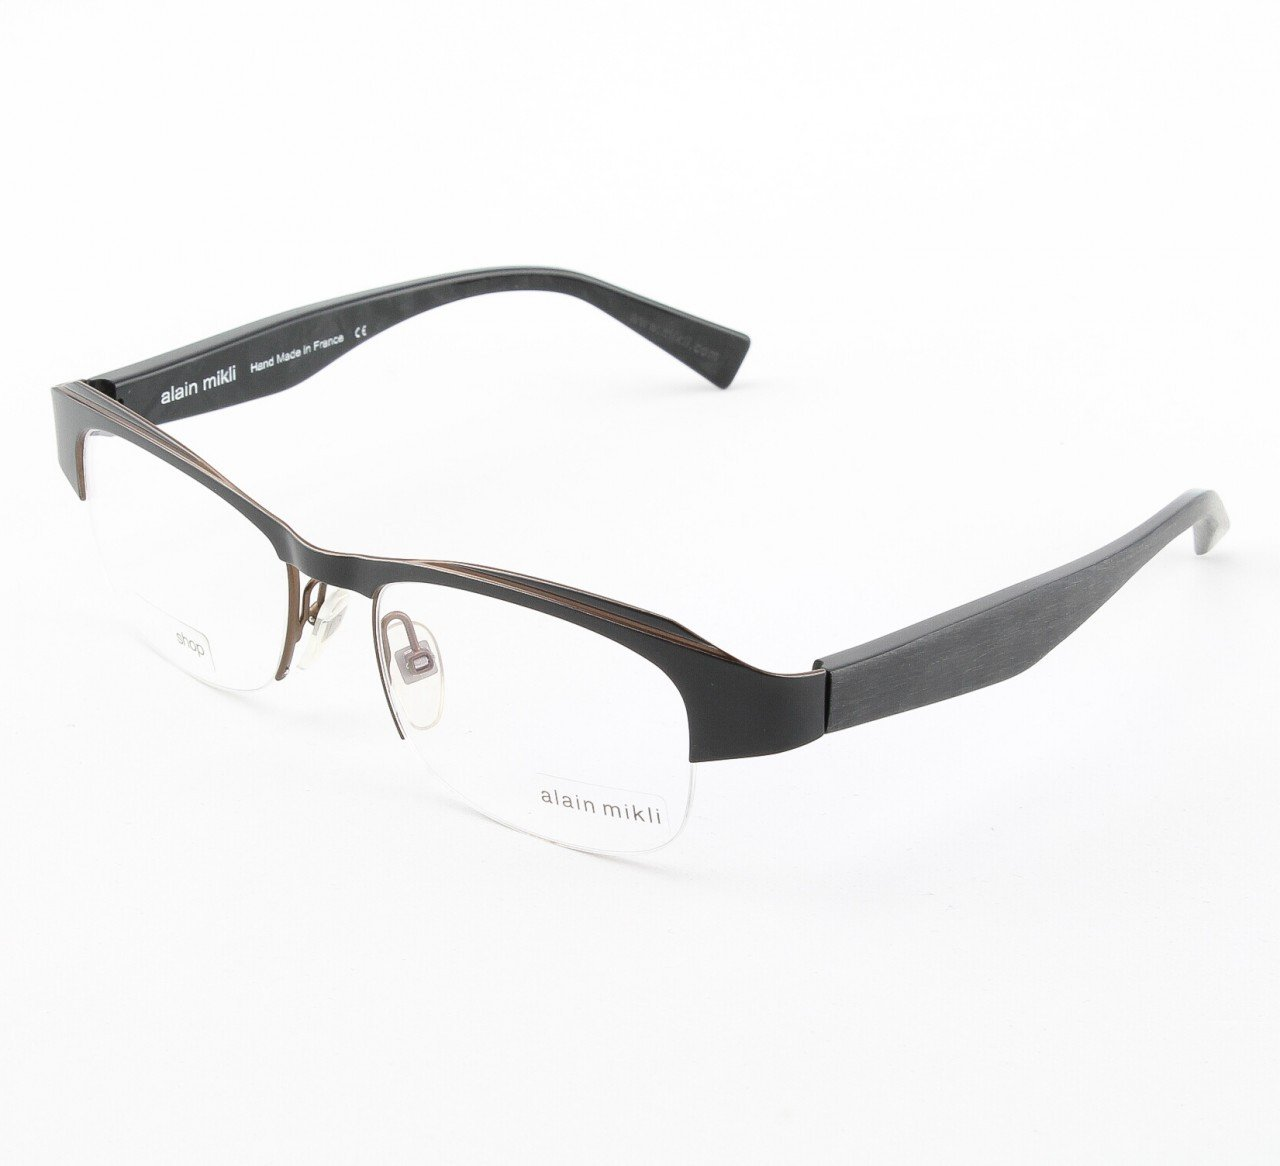 Alain Mikli Eyeglasses AL1041 Col. 1 Black Metal with Copper Accent